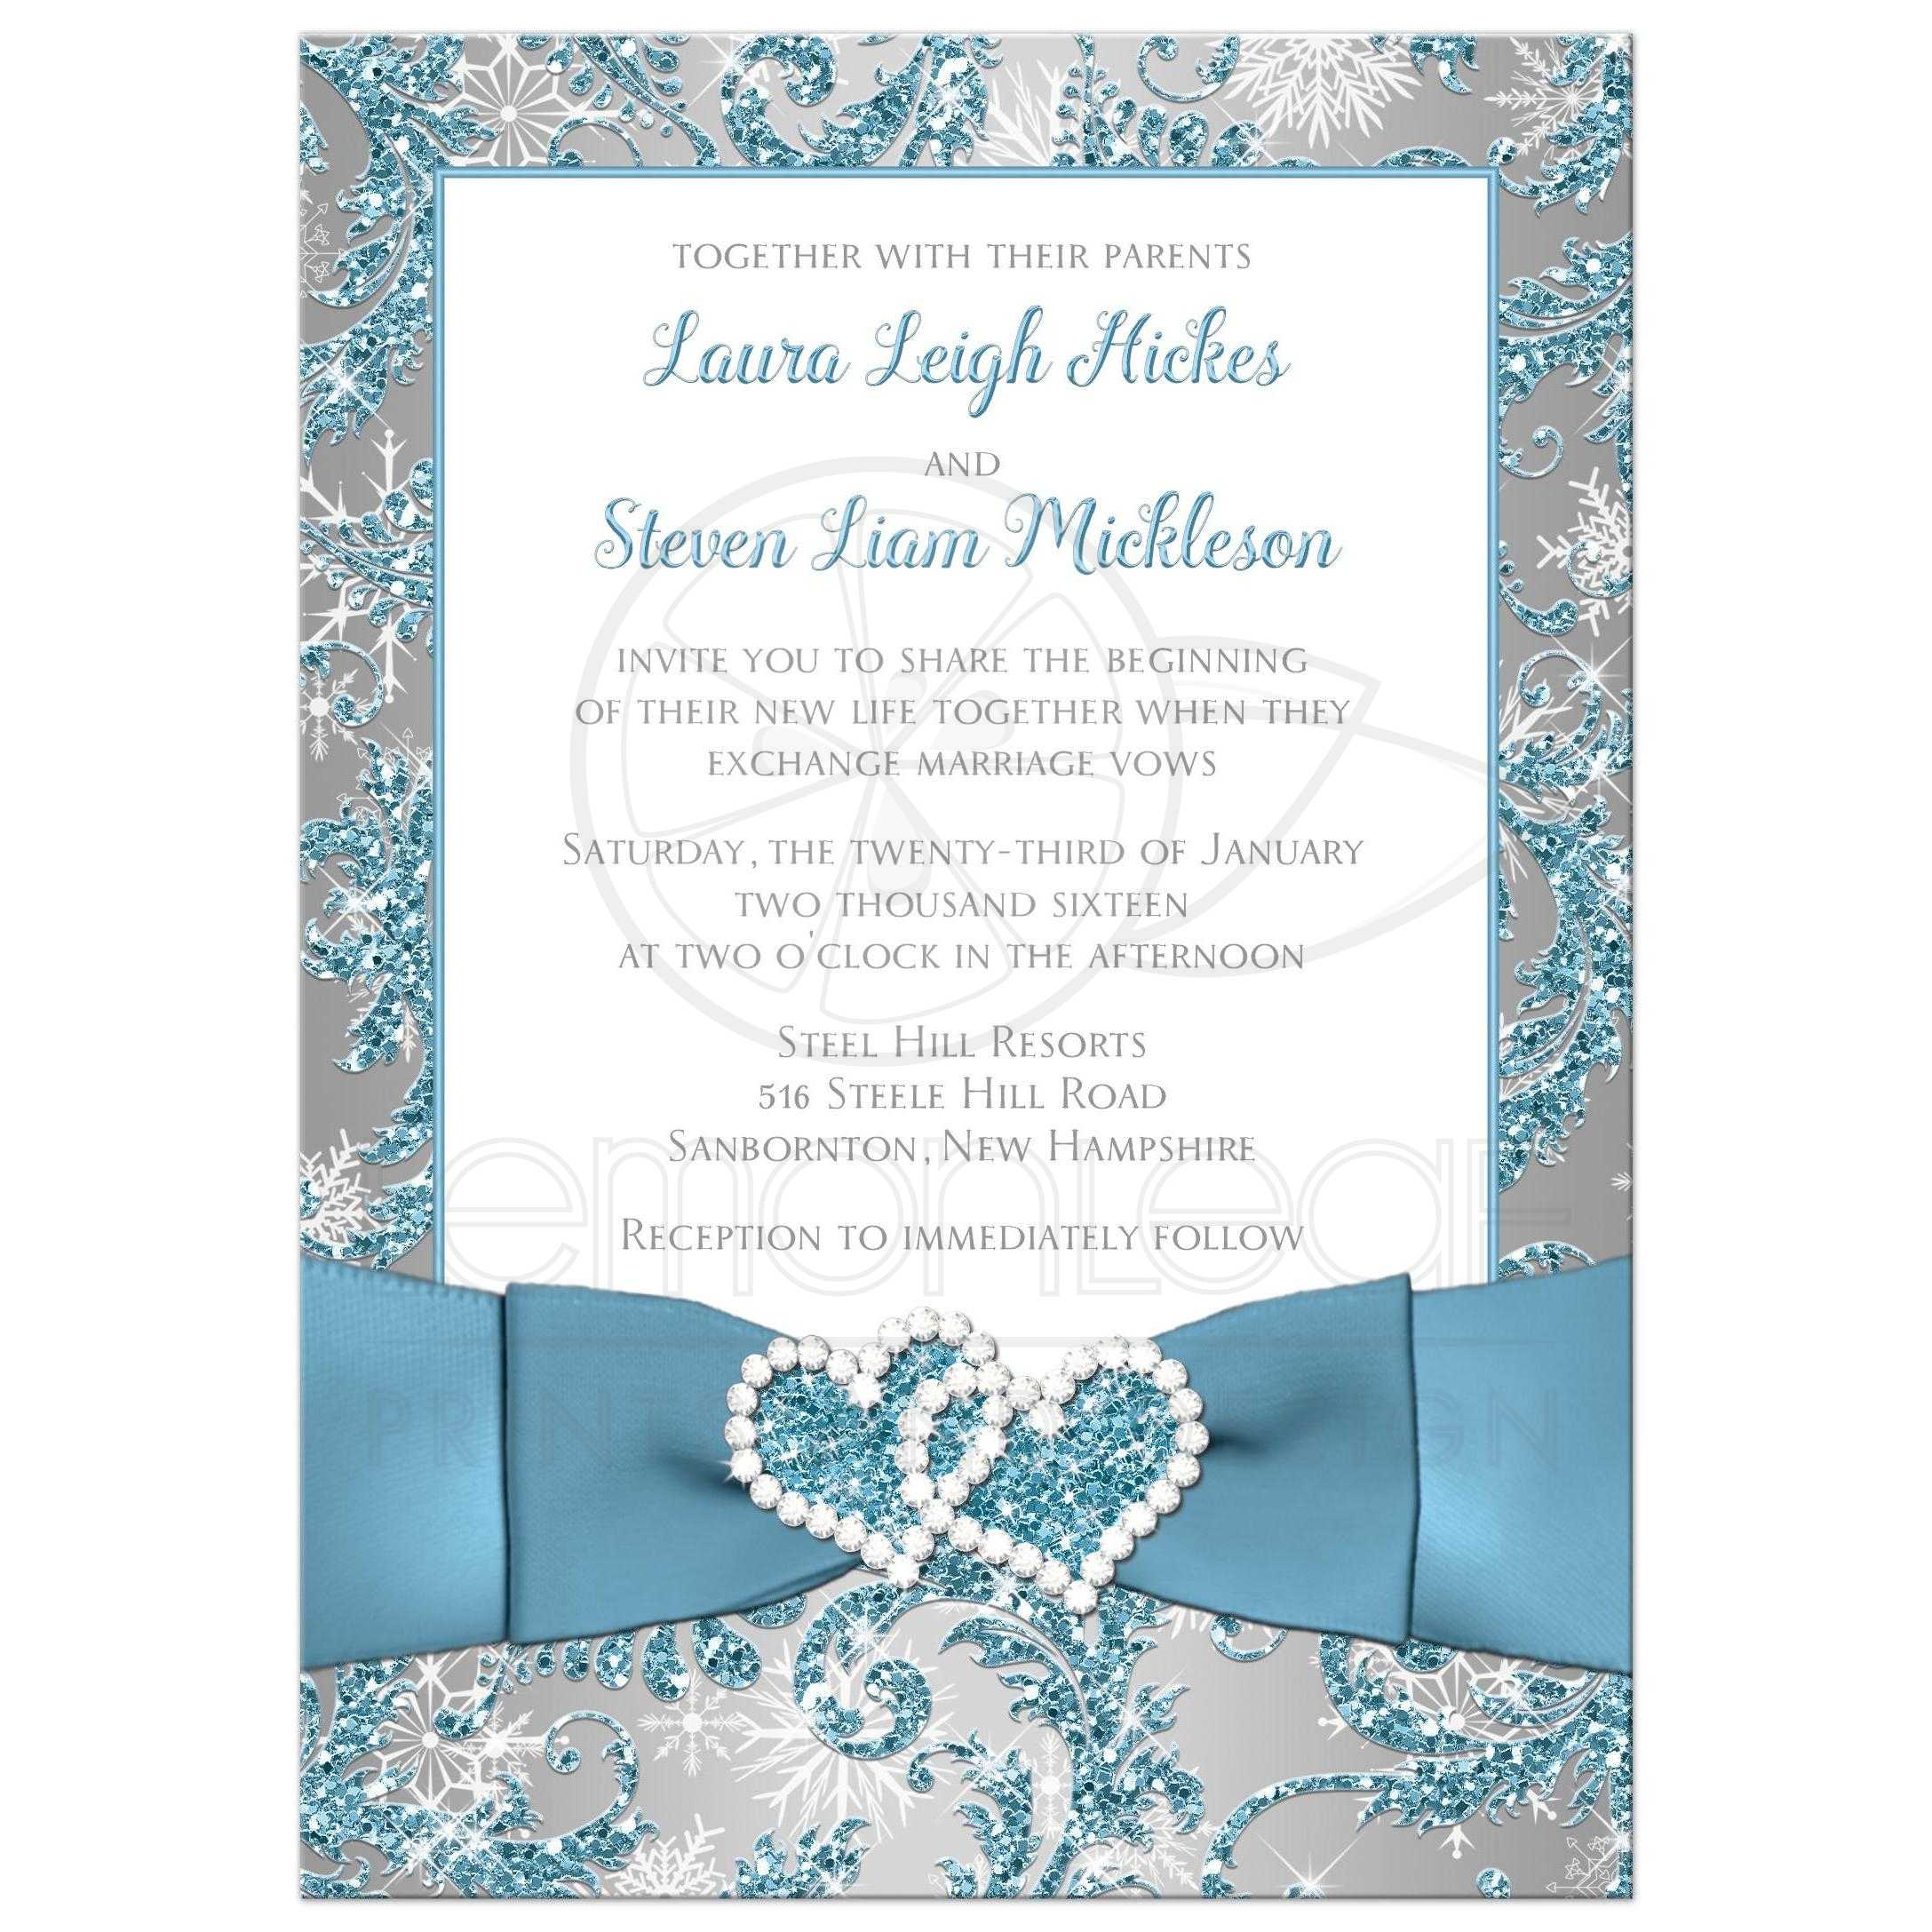 Winter Wonderland Wedding Invite In Ice Blue, Silver And White Snowflakes  With Joined Jewelled Hearts ...